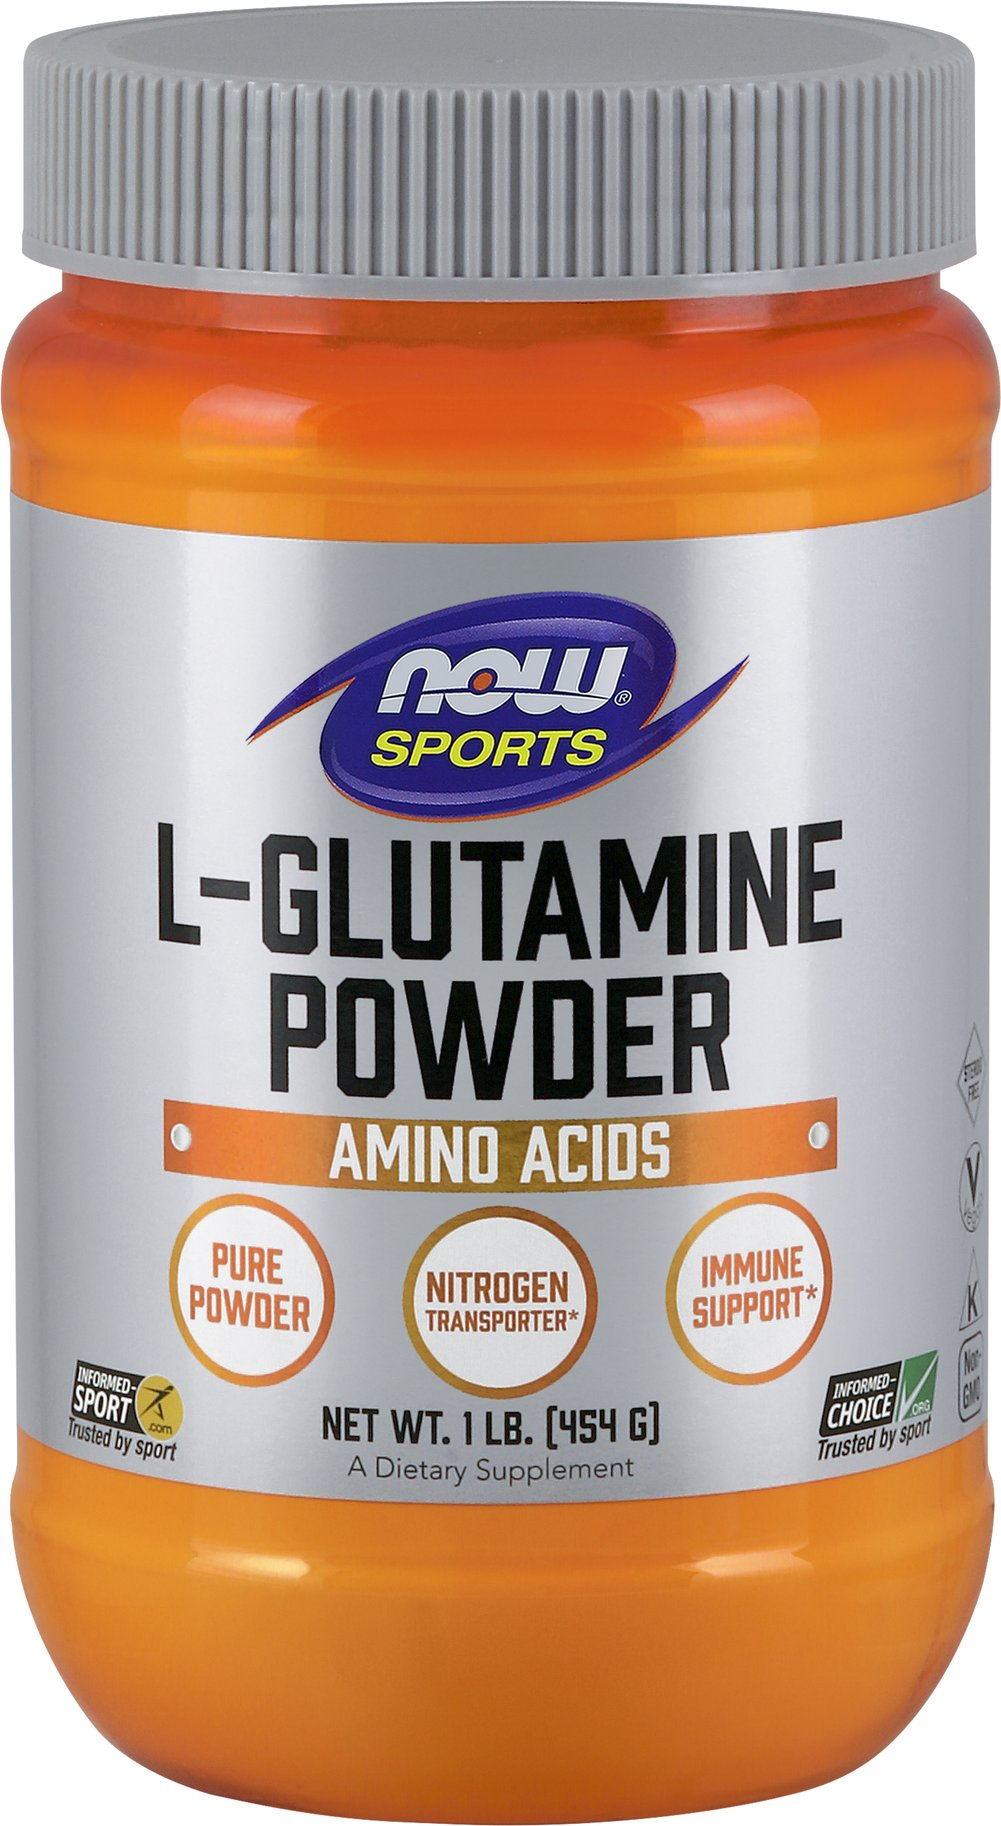 L-Glutamine Powder 5000 mg <p><strong>From the Manufacturer's Label:</strong></p><p>NOW® L-Glutamine Powder is a 100% pure, free-form, non-essential, amino acid and is the highest grade available.**</p><p>Manufactured by NOW® Foods</p> 1 lb Powder 5000 mg $23.99